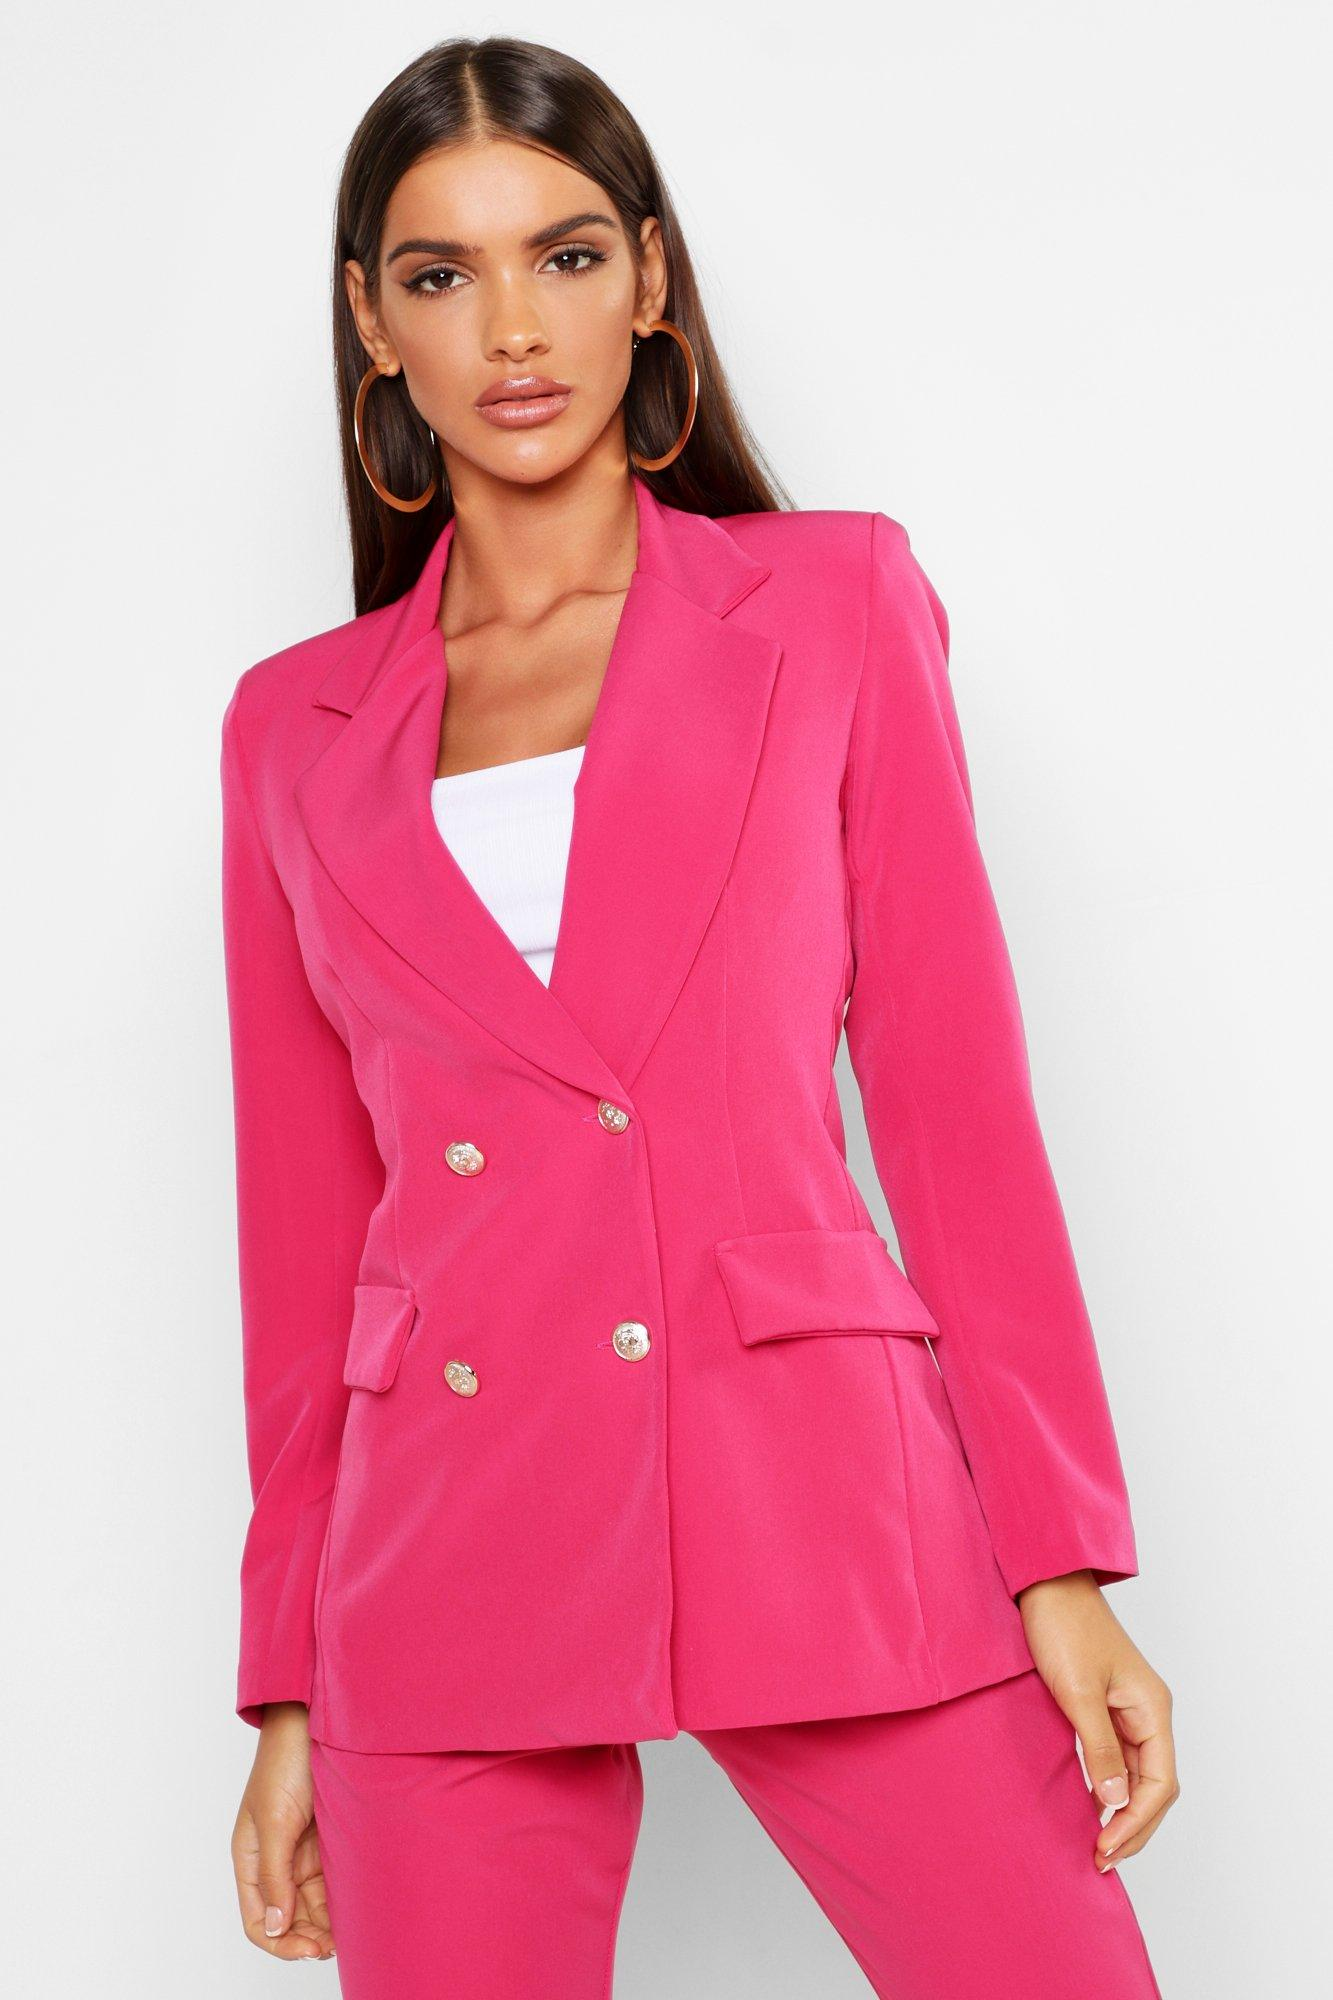 boohoo Womens Double Breasted Boxy Military Blazer - Pink - 12, Pink